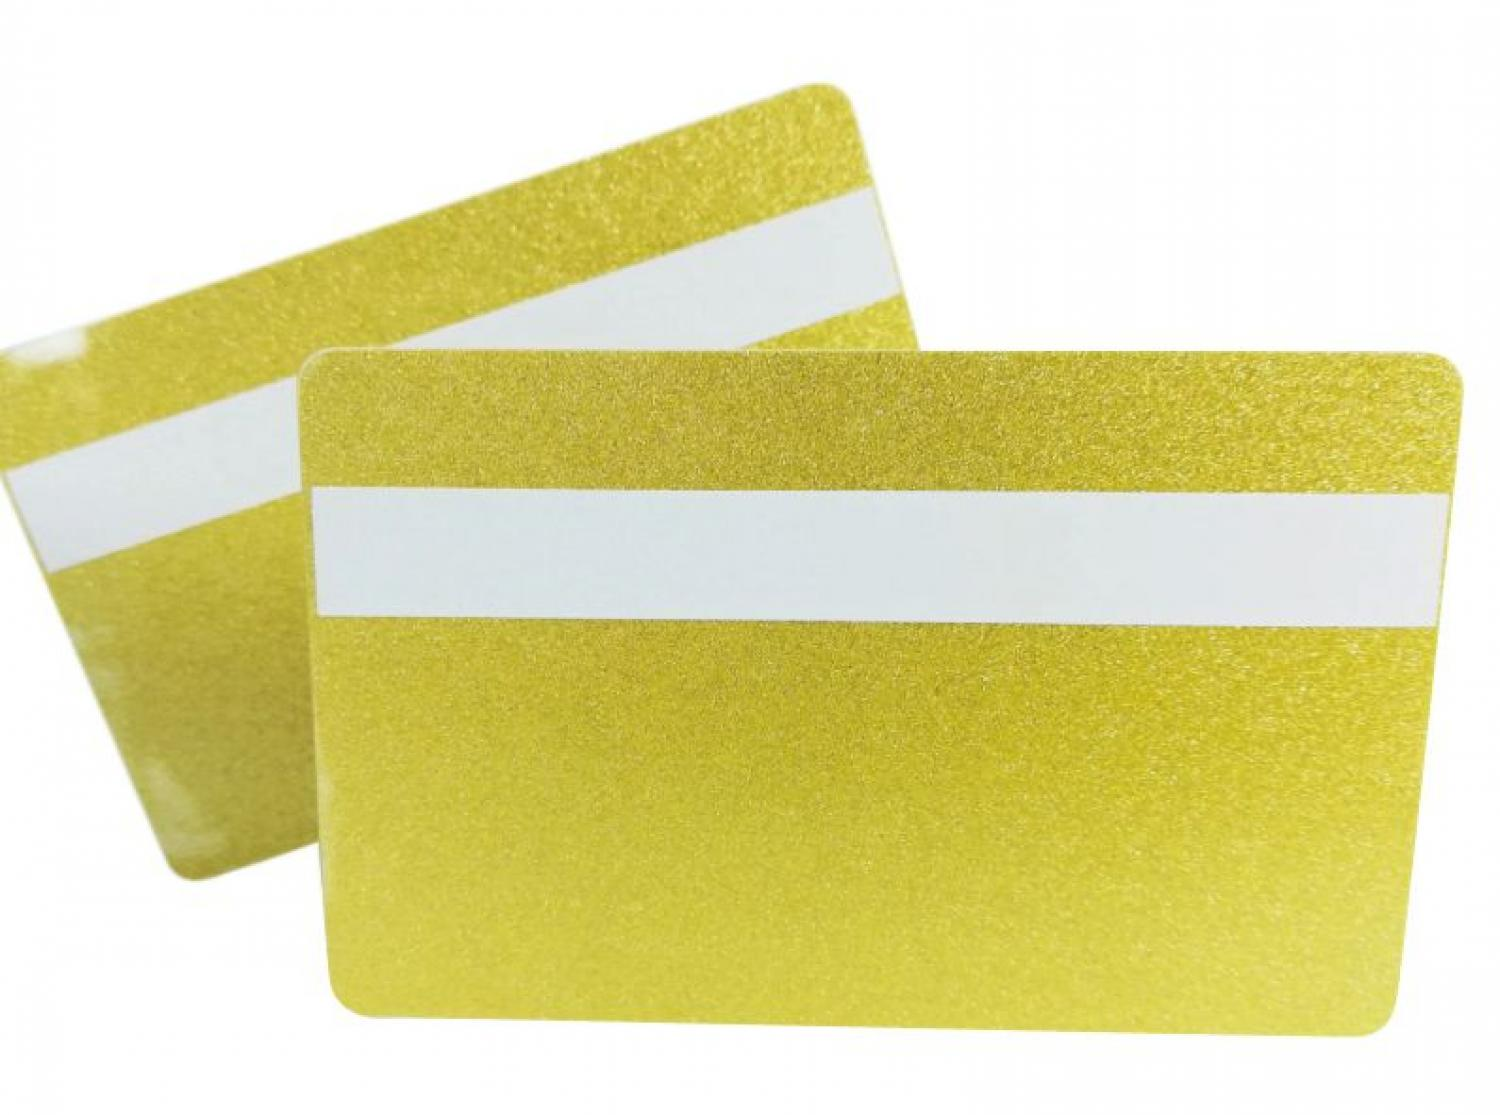 Plastic card gold with signature panel